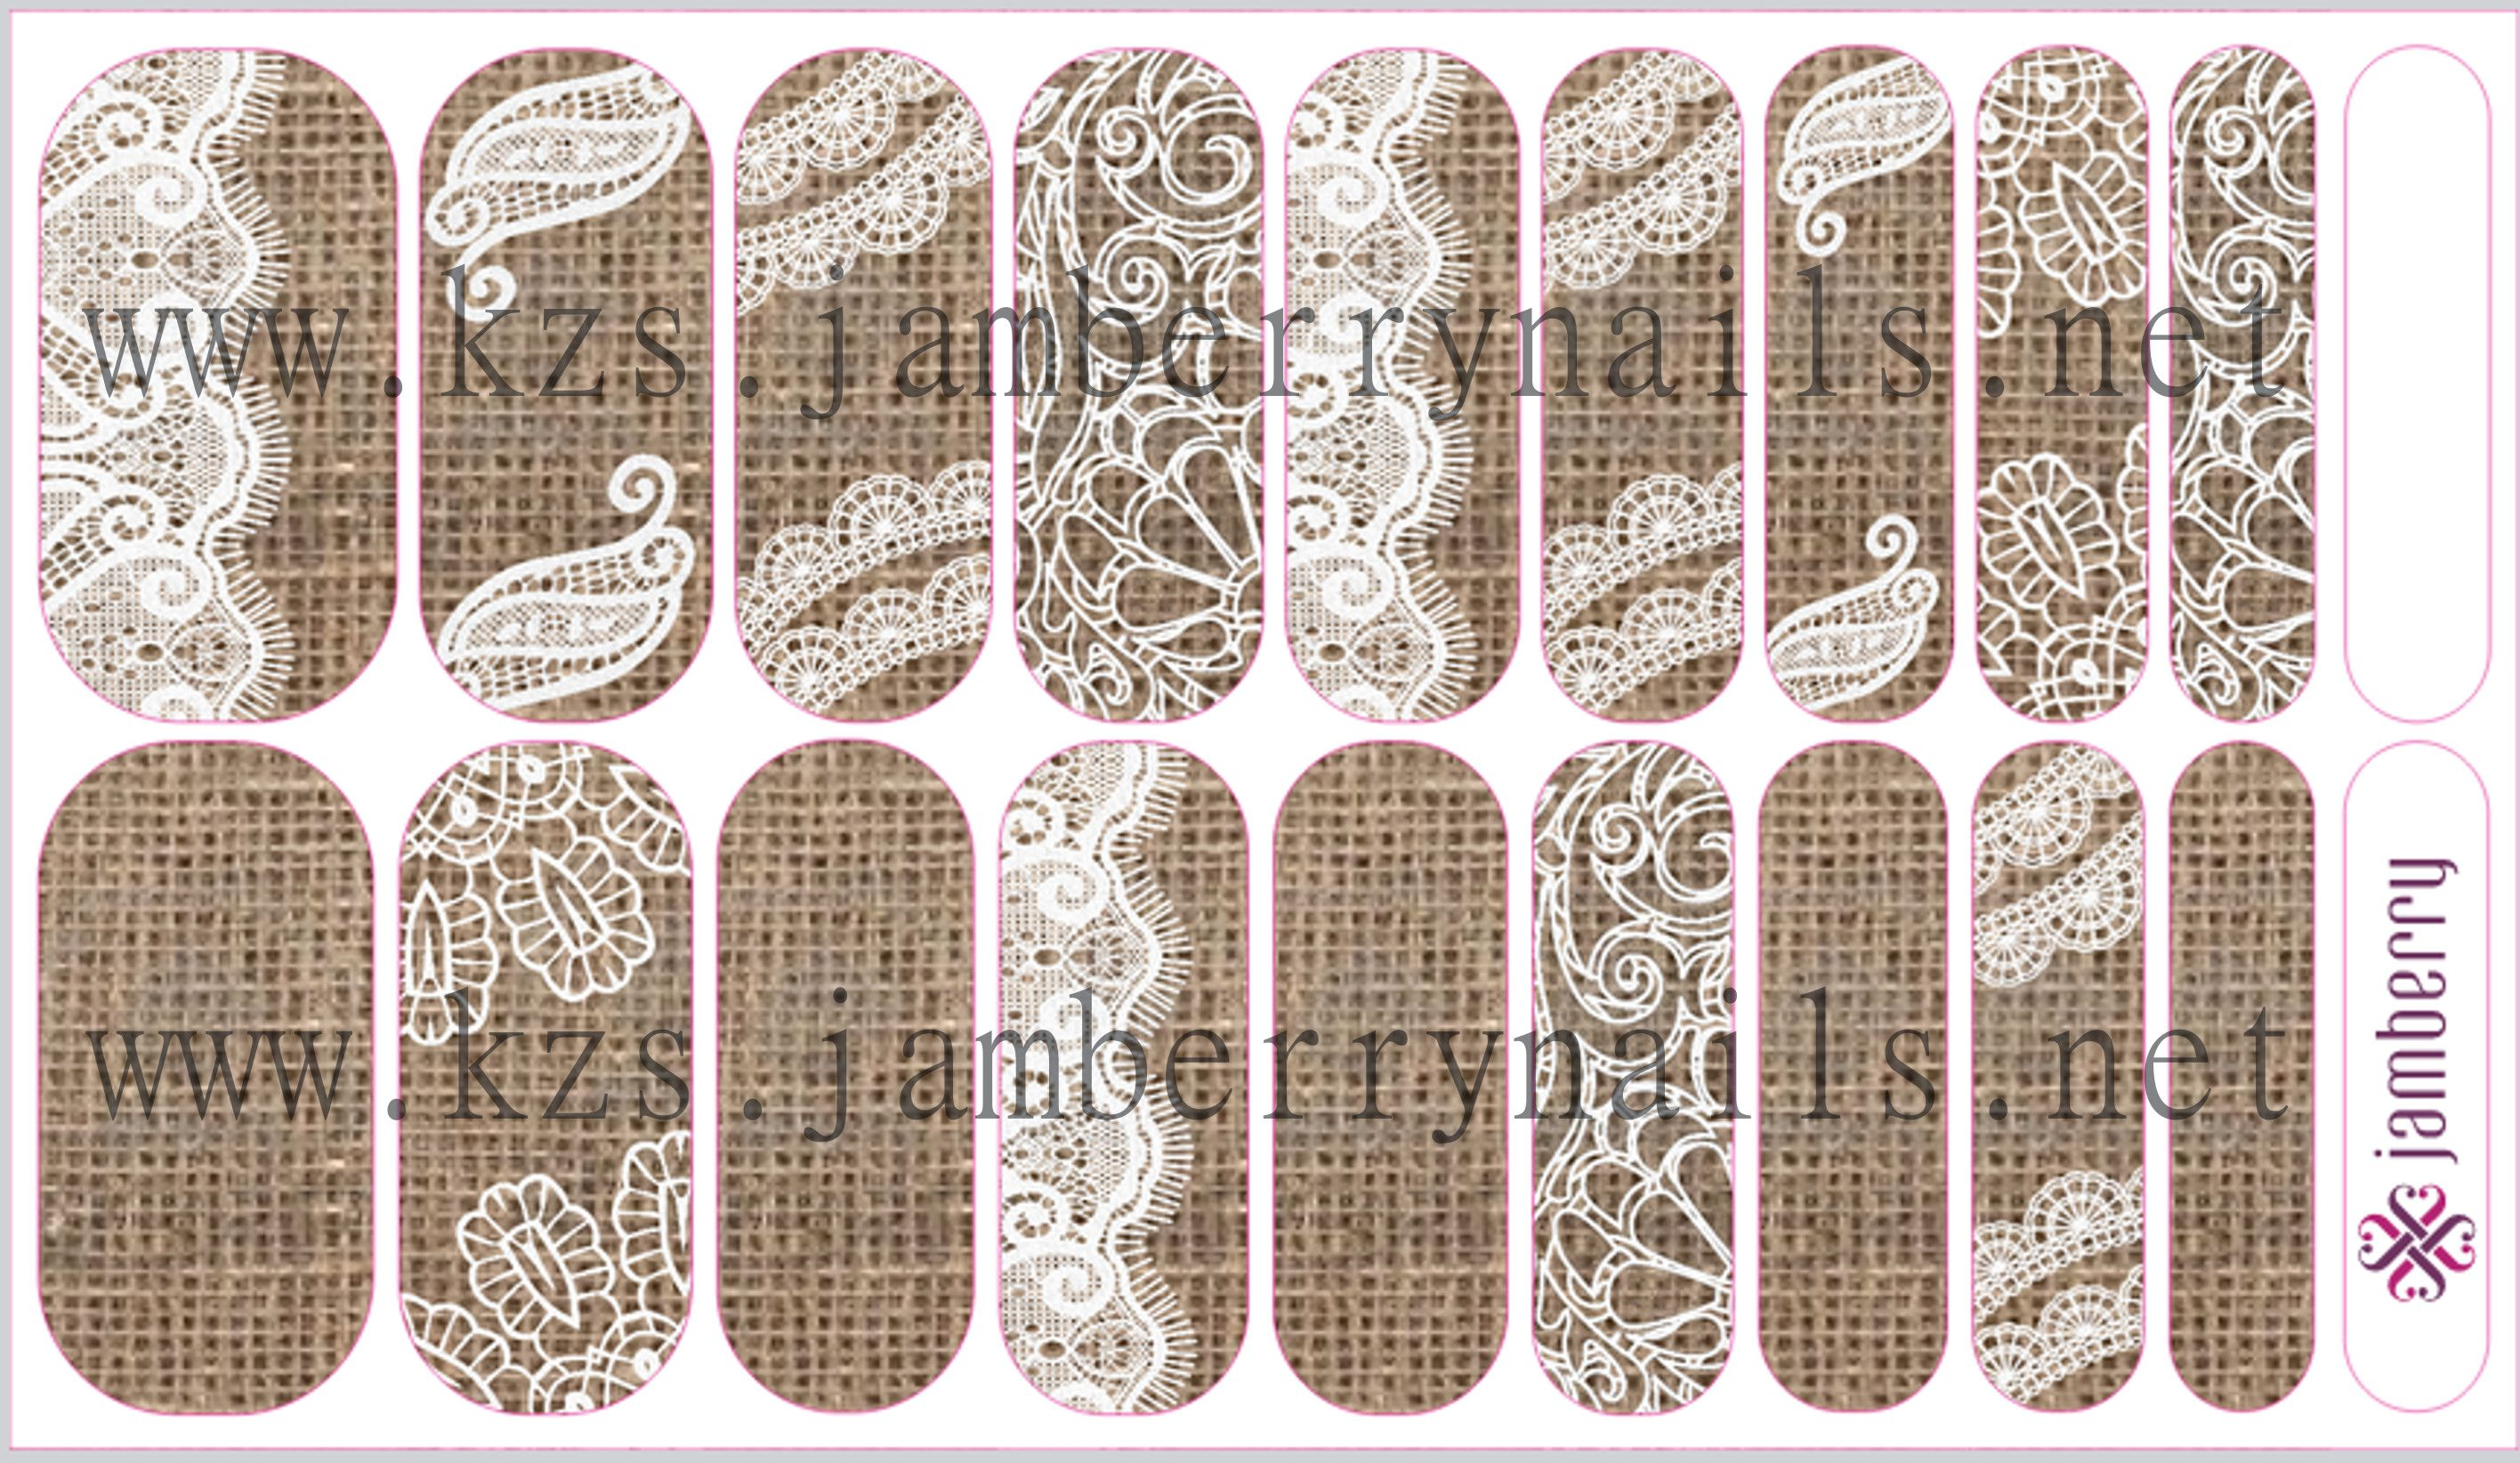 Burlap and Lace Jamberry nail wraps www.kzs,jamberrynails.net ...